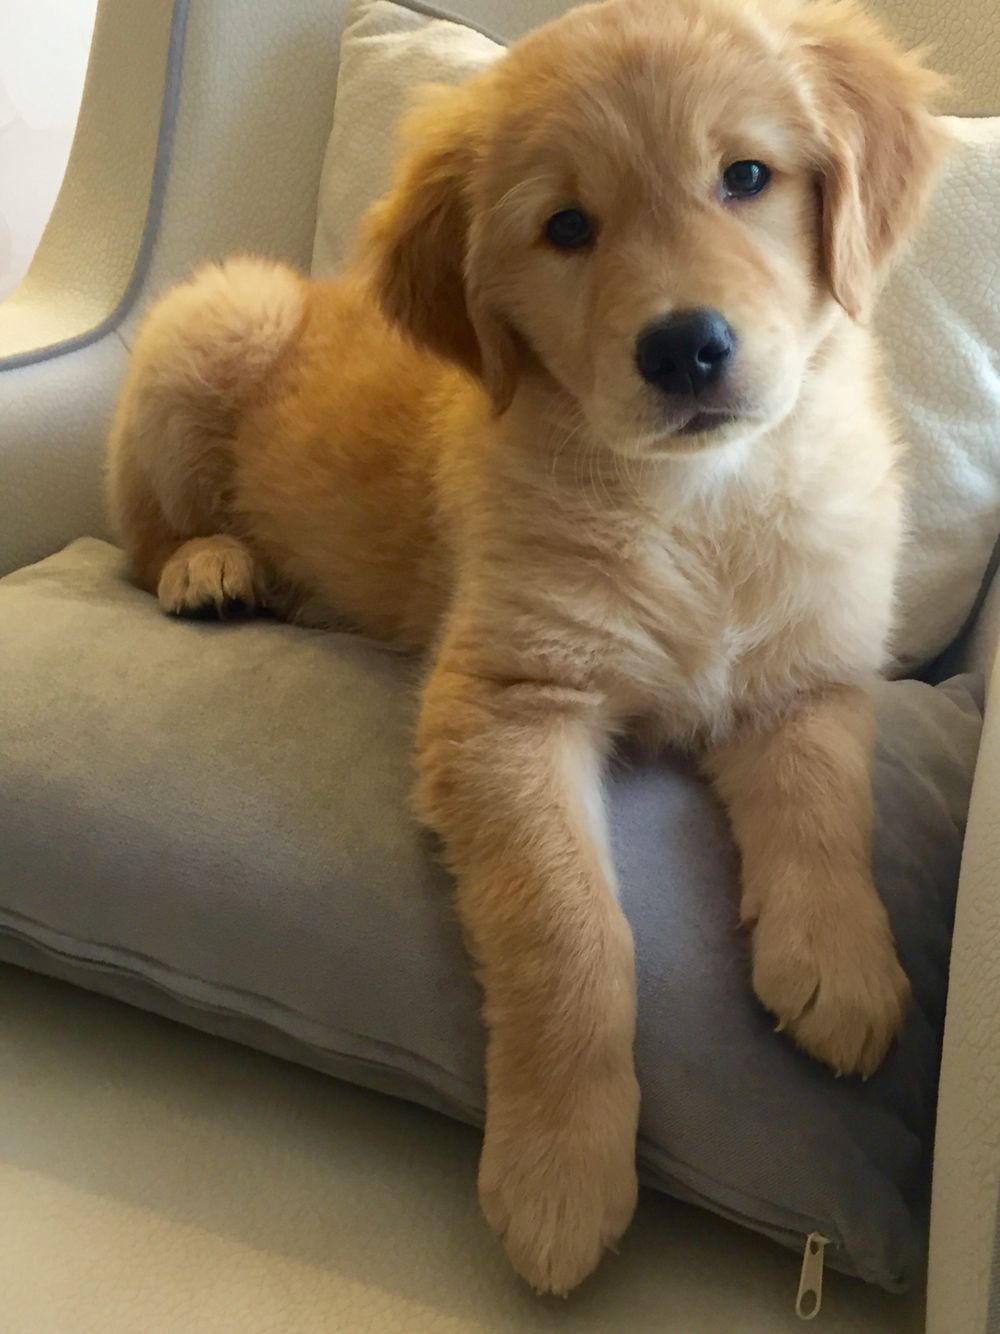 Pin By Kelsey Wray On Puppies Puppies Cute Dogs Cute Puppies